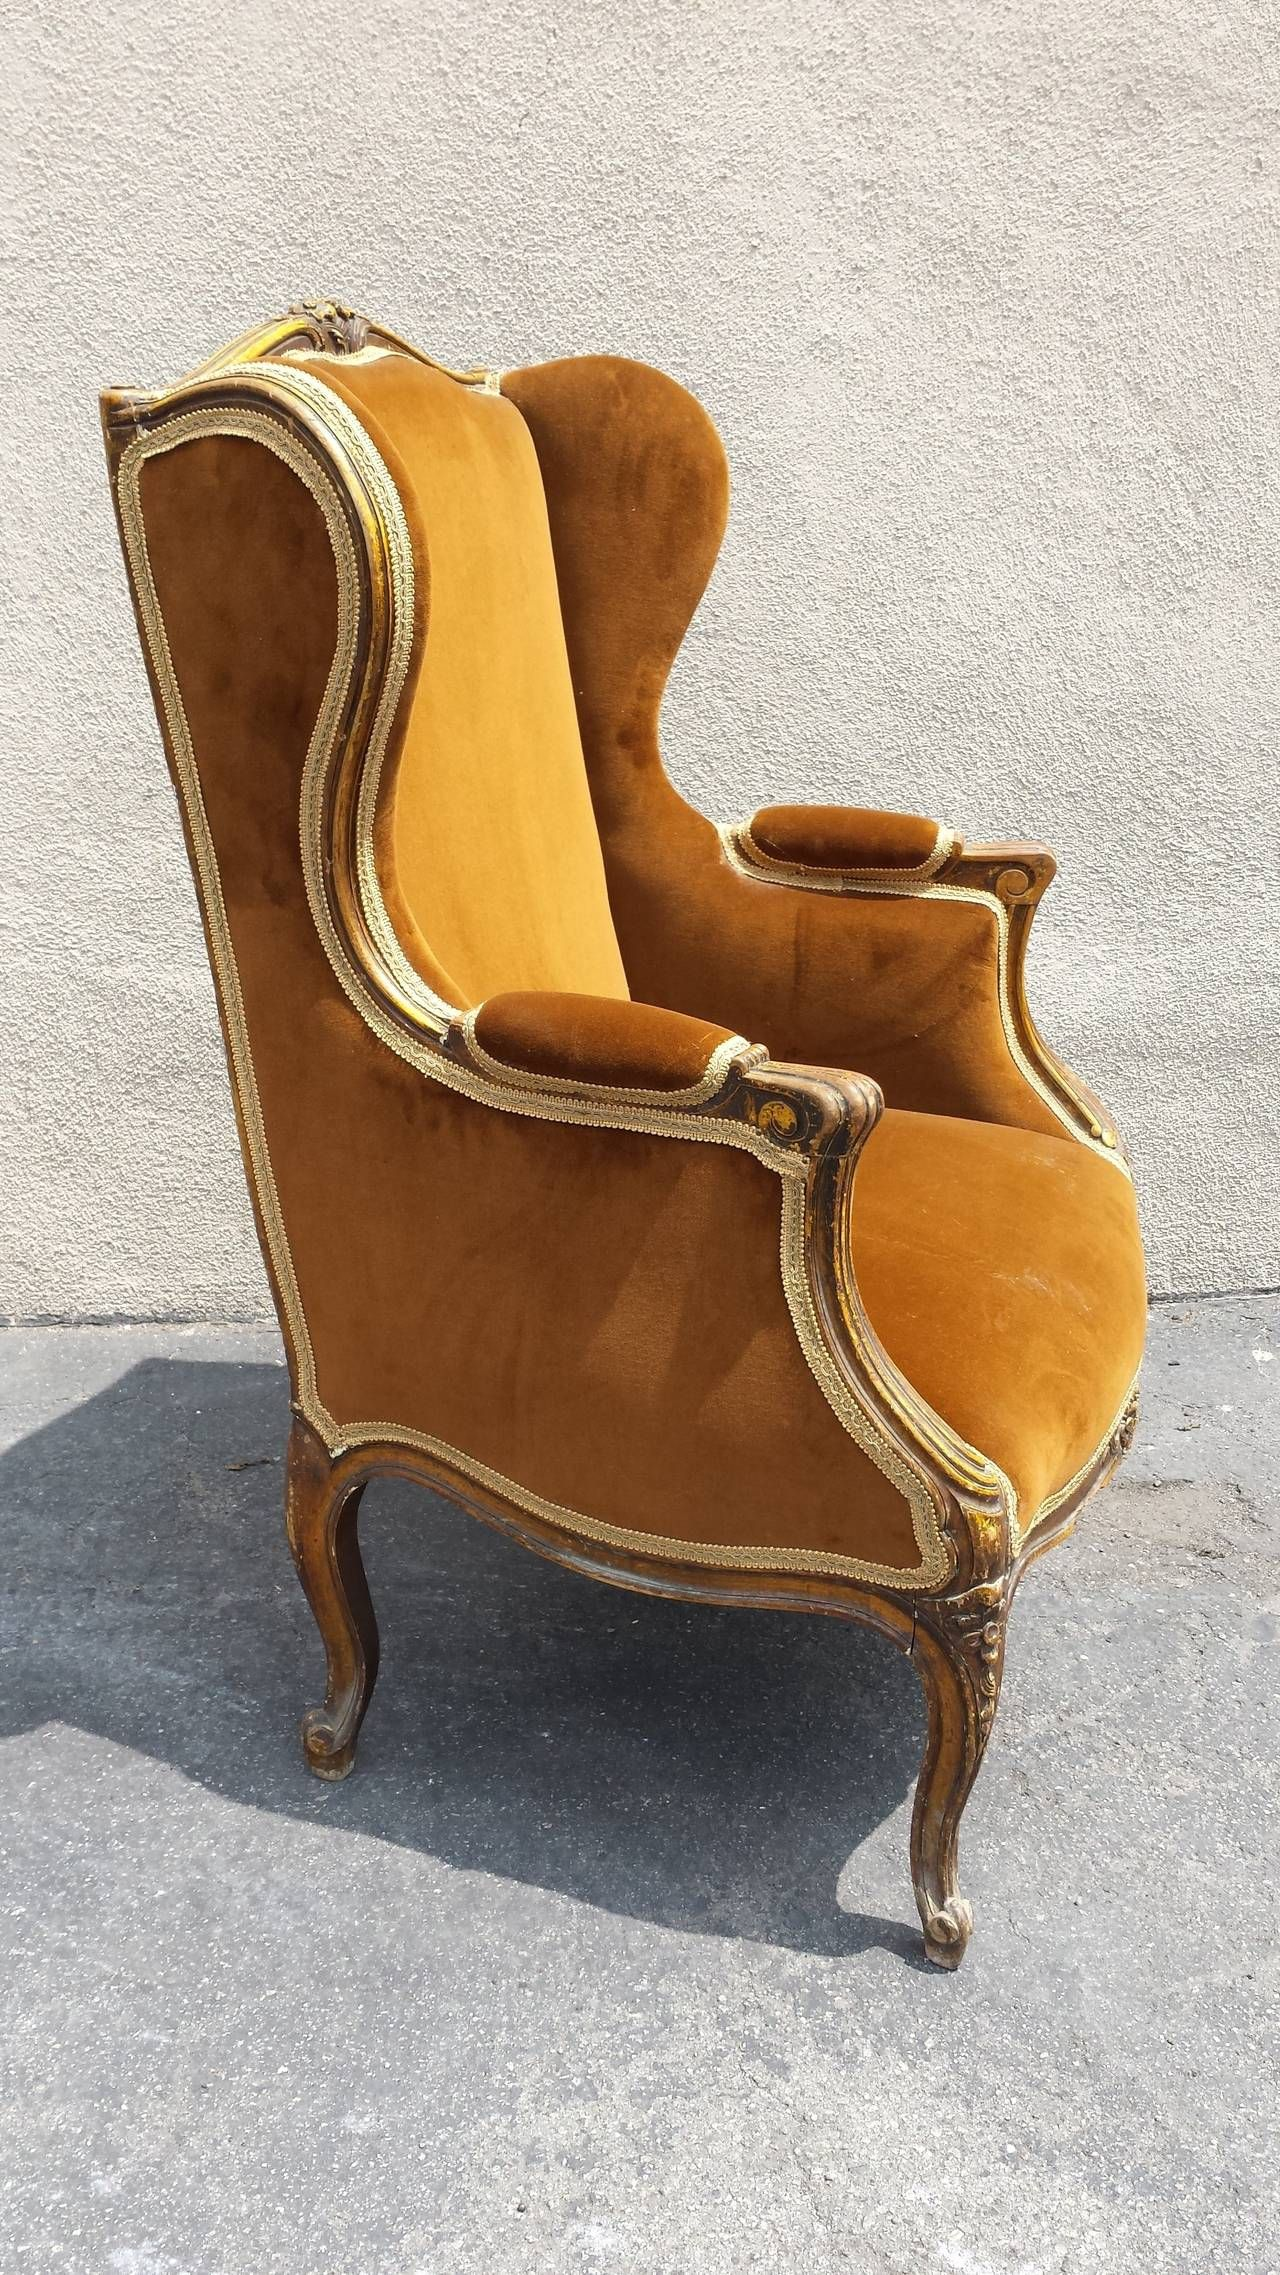 French Chair French Louis XV Style Bergere Armchair & French Chair French Louis XV Style Bergere Armchair | Armchairs ...